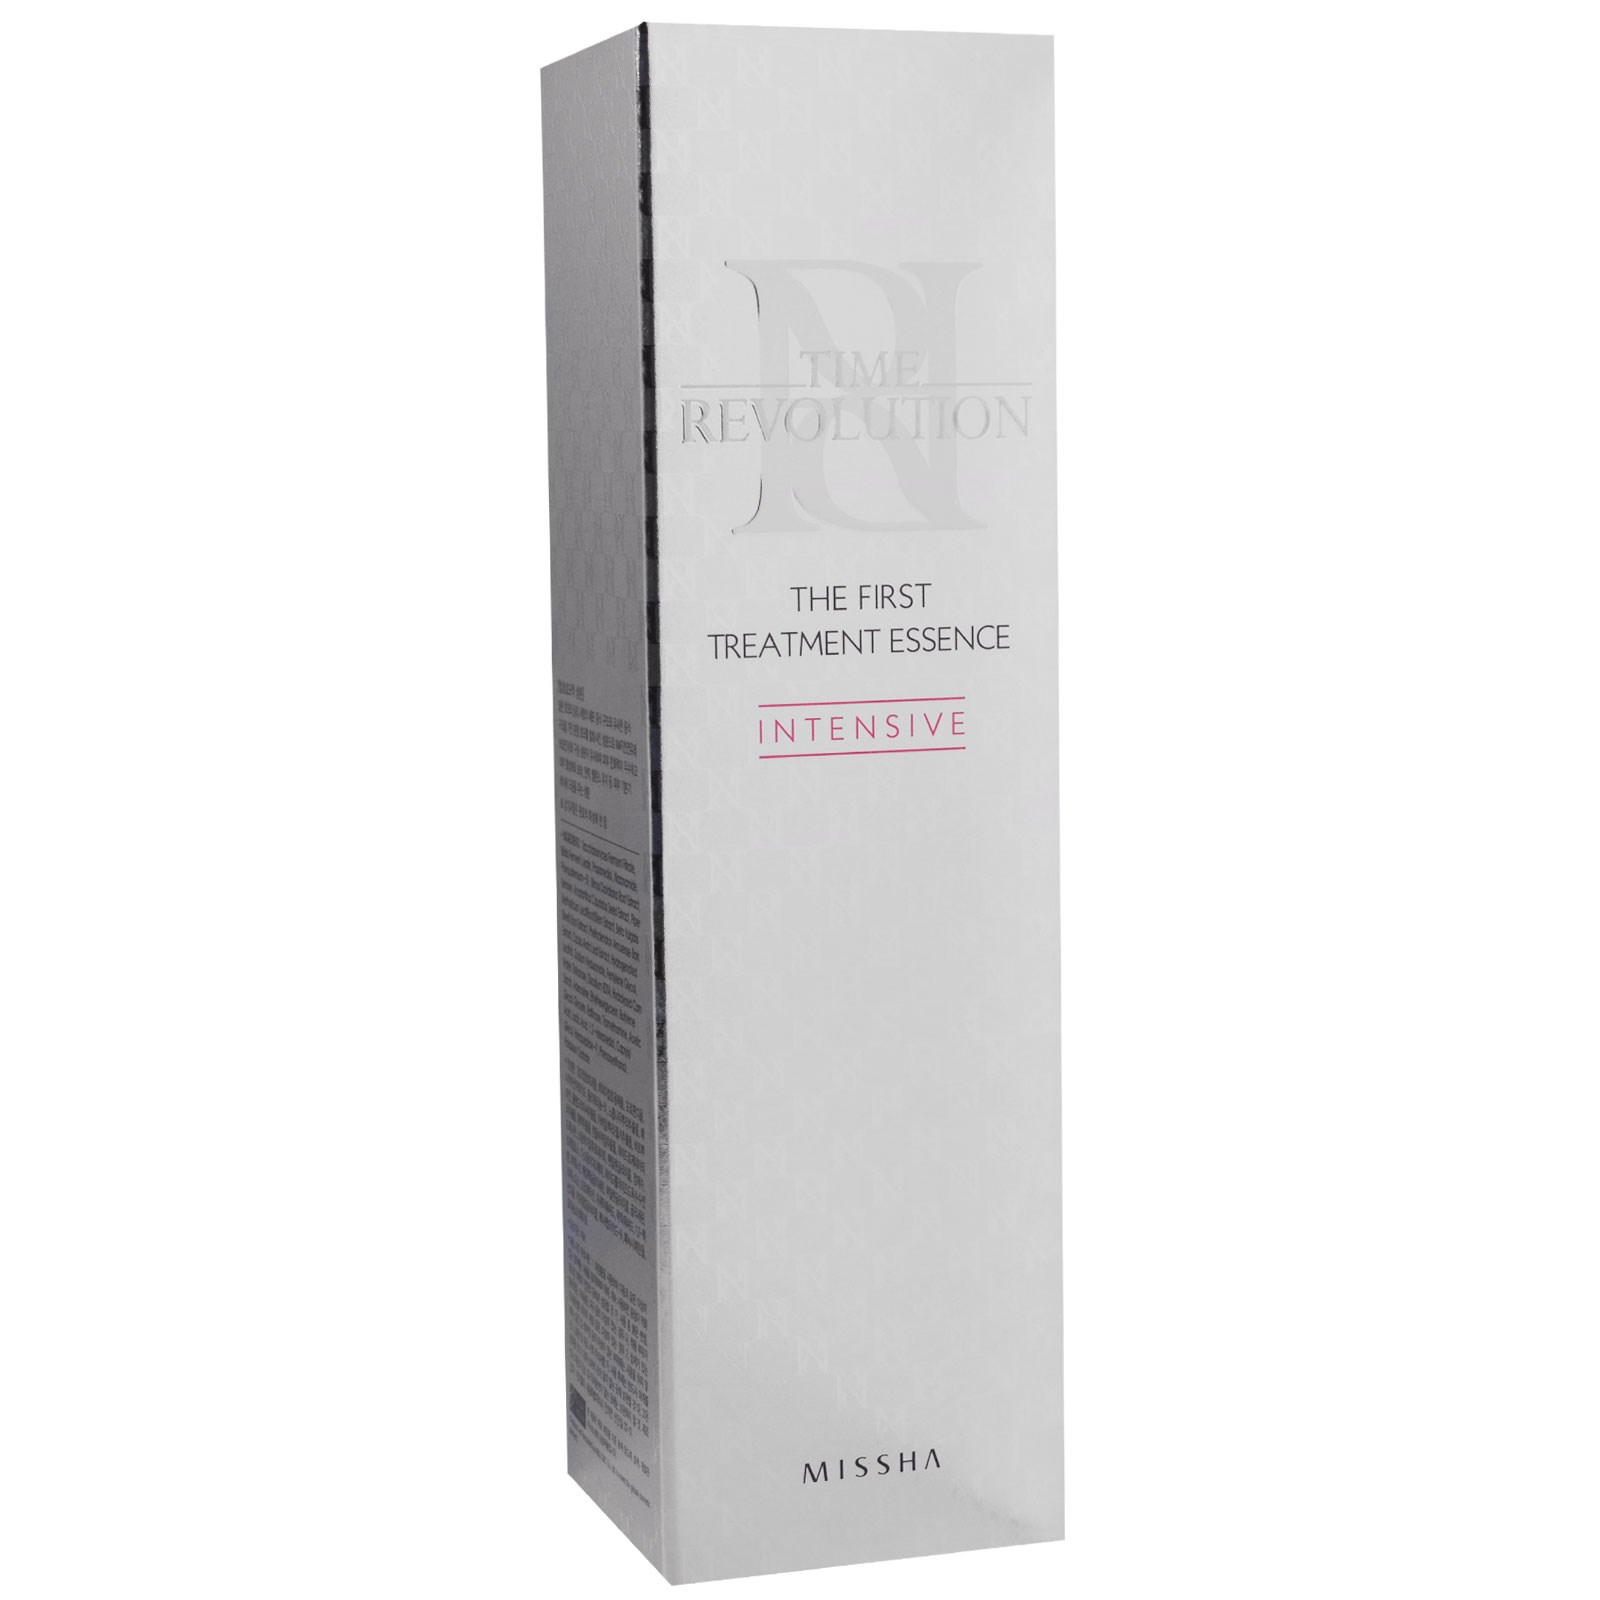 Missha Time Revolution The First Treatment Essence Intensive 150 Ml Discontinued Item By